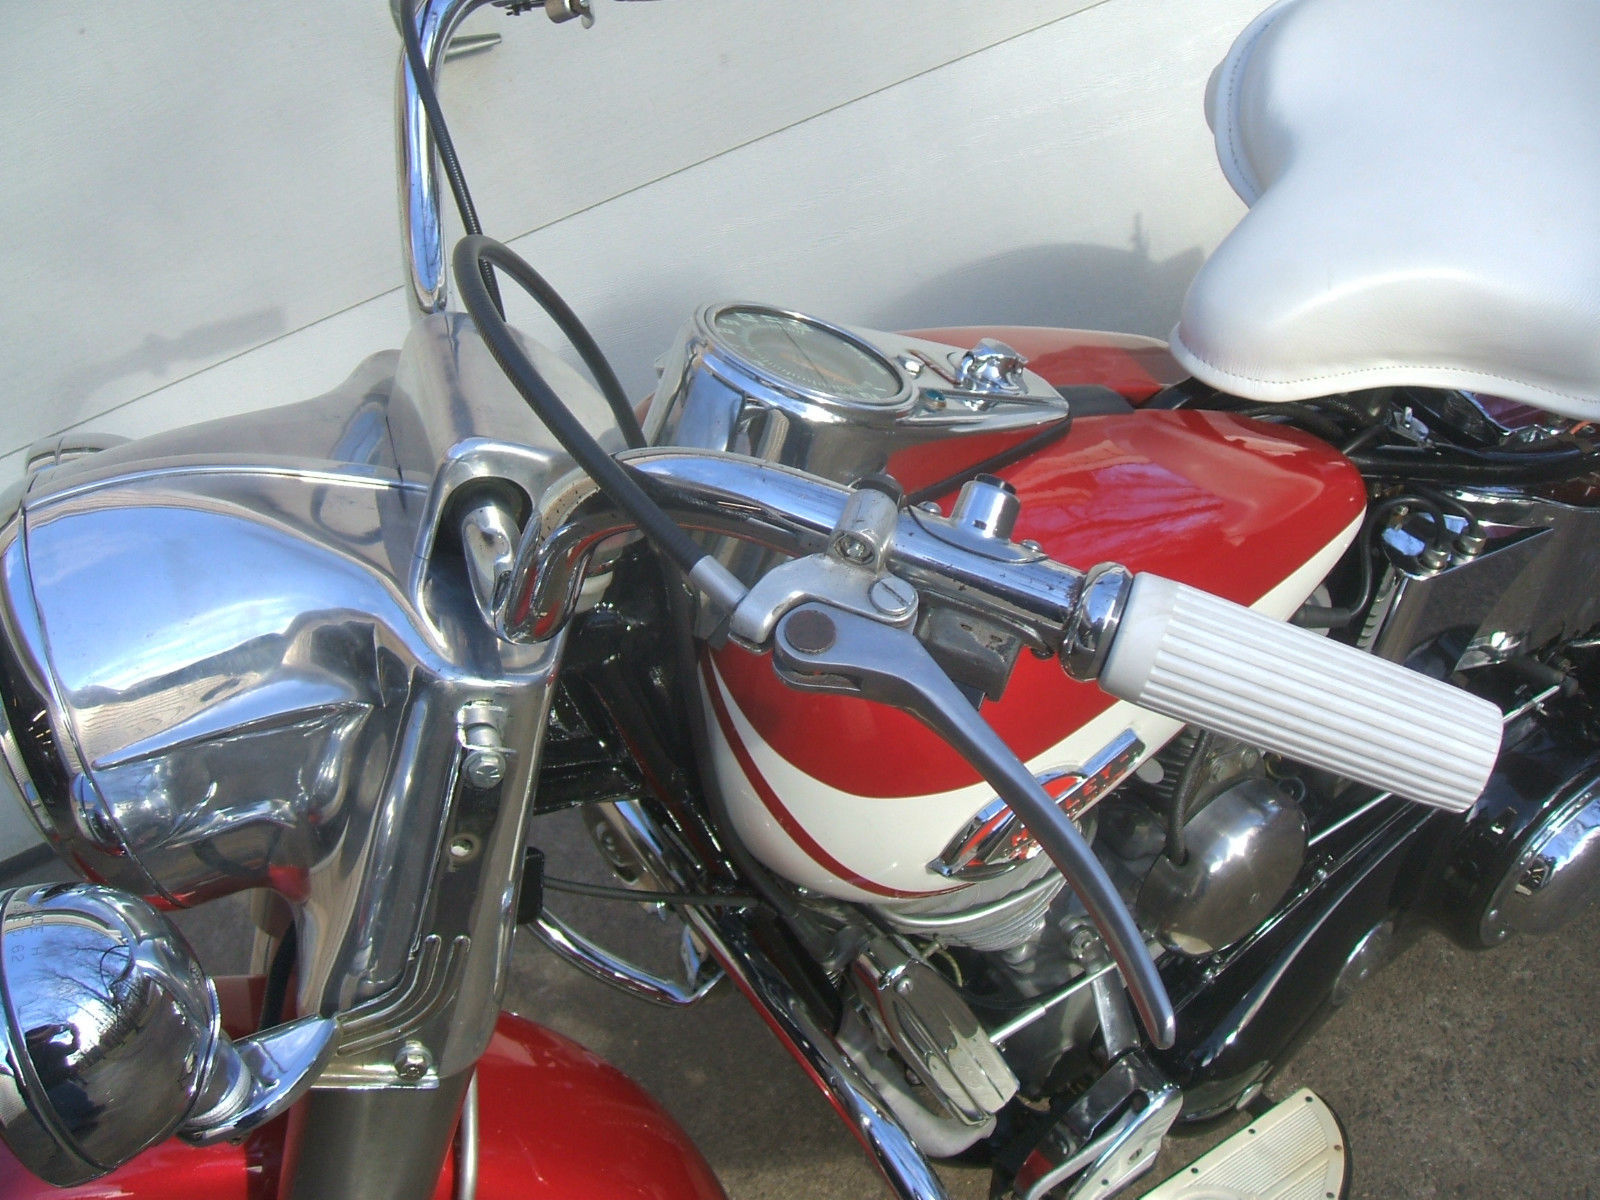 Harley-Davidson Panhead - 1960 - Handlebars, Head Light, Brake and Gas Tank.